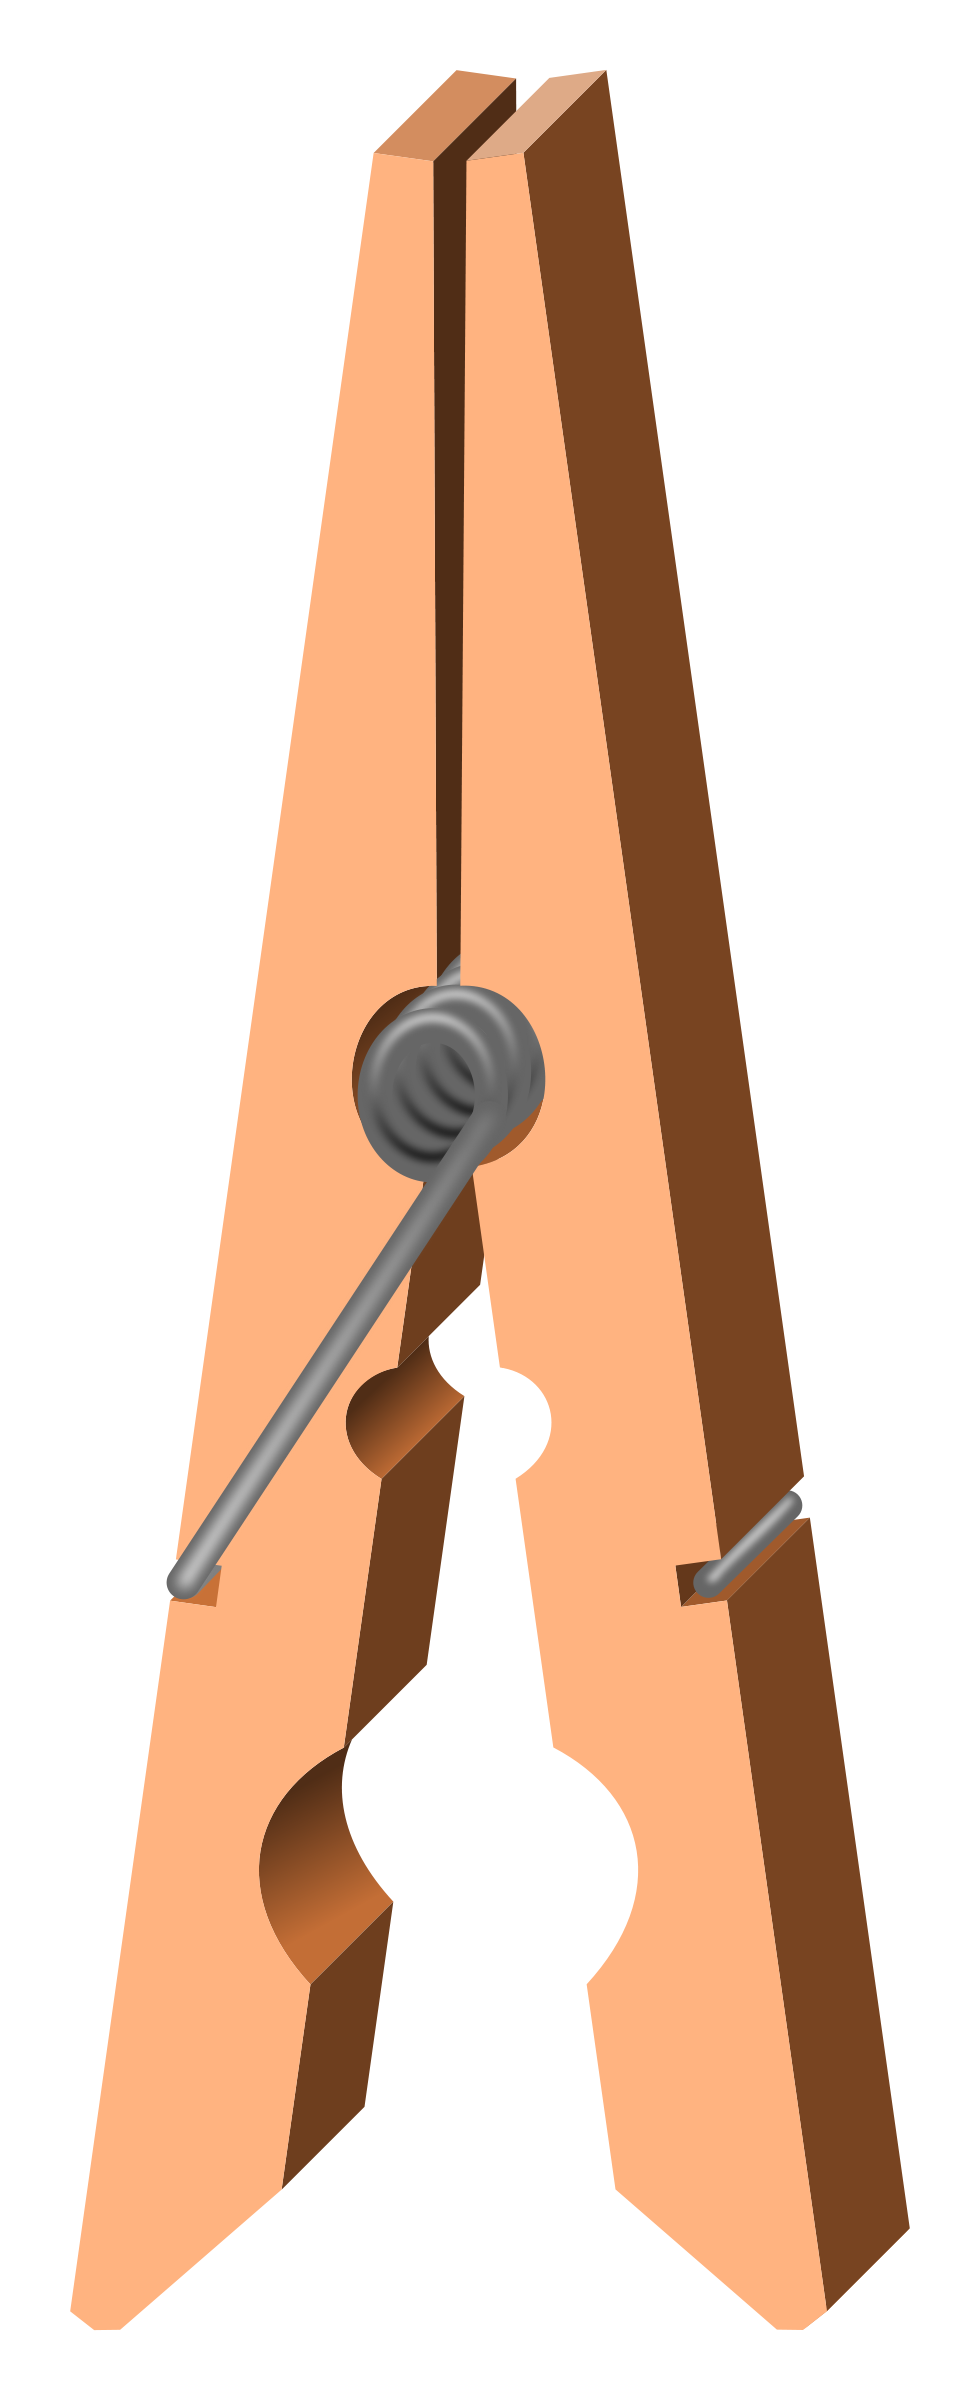 Trends For > Clothes Pin Clip Art - Cliparts.co